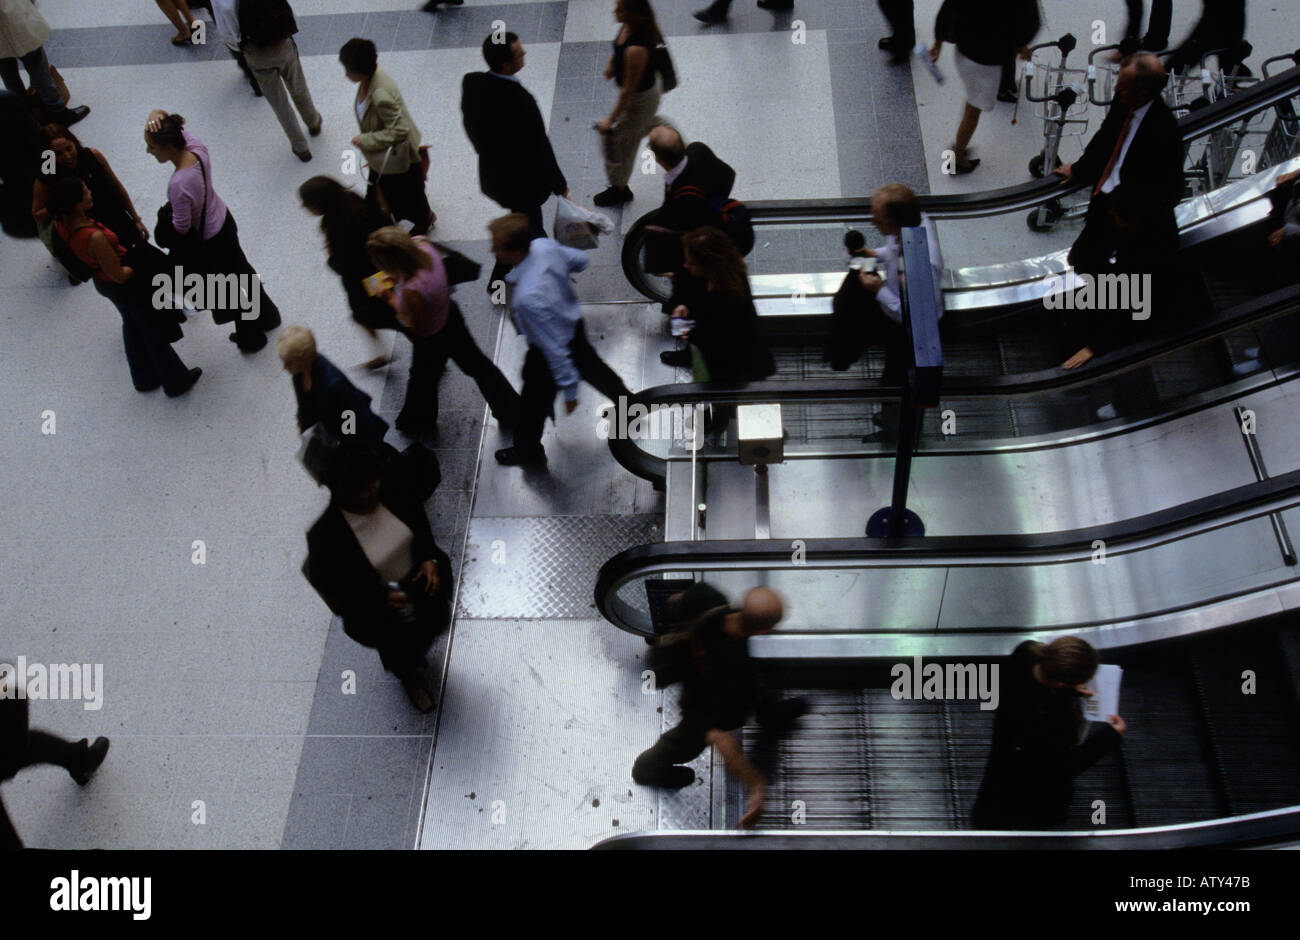 England commuters on Liverpool Street station escalator in London - Stock Image